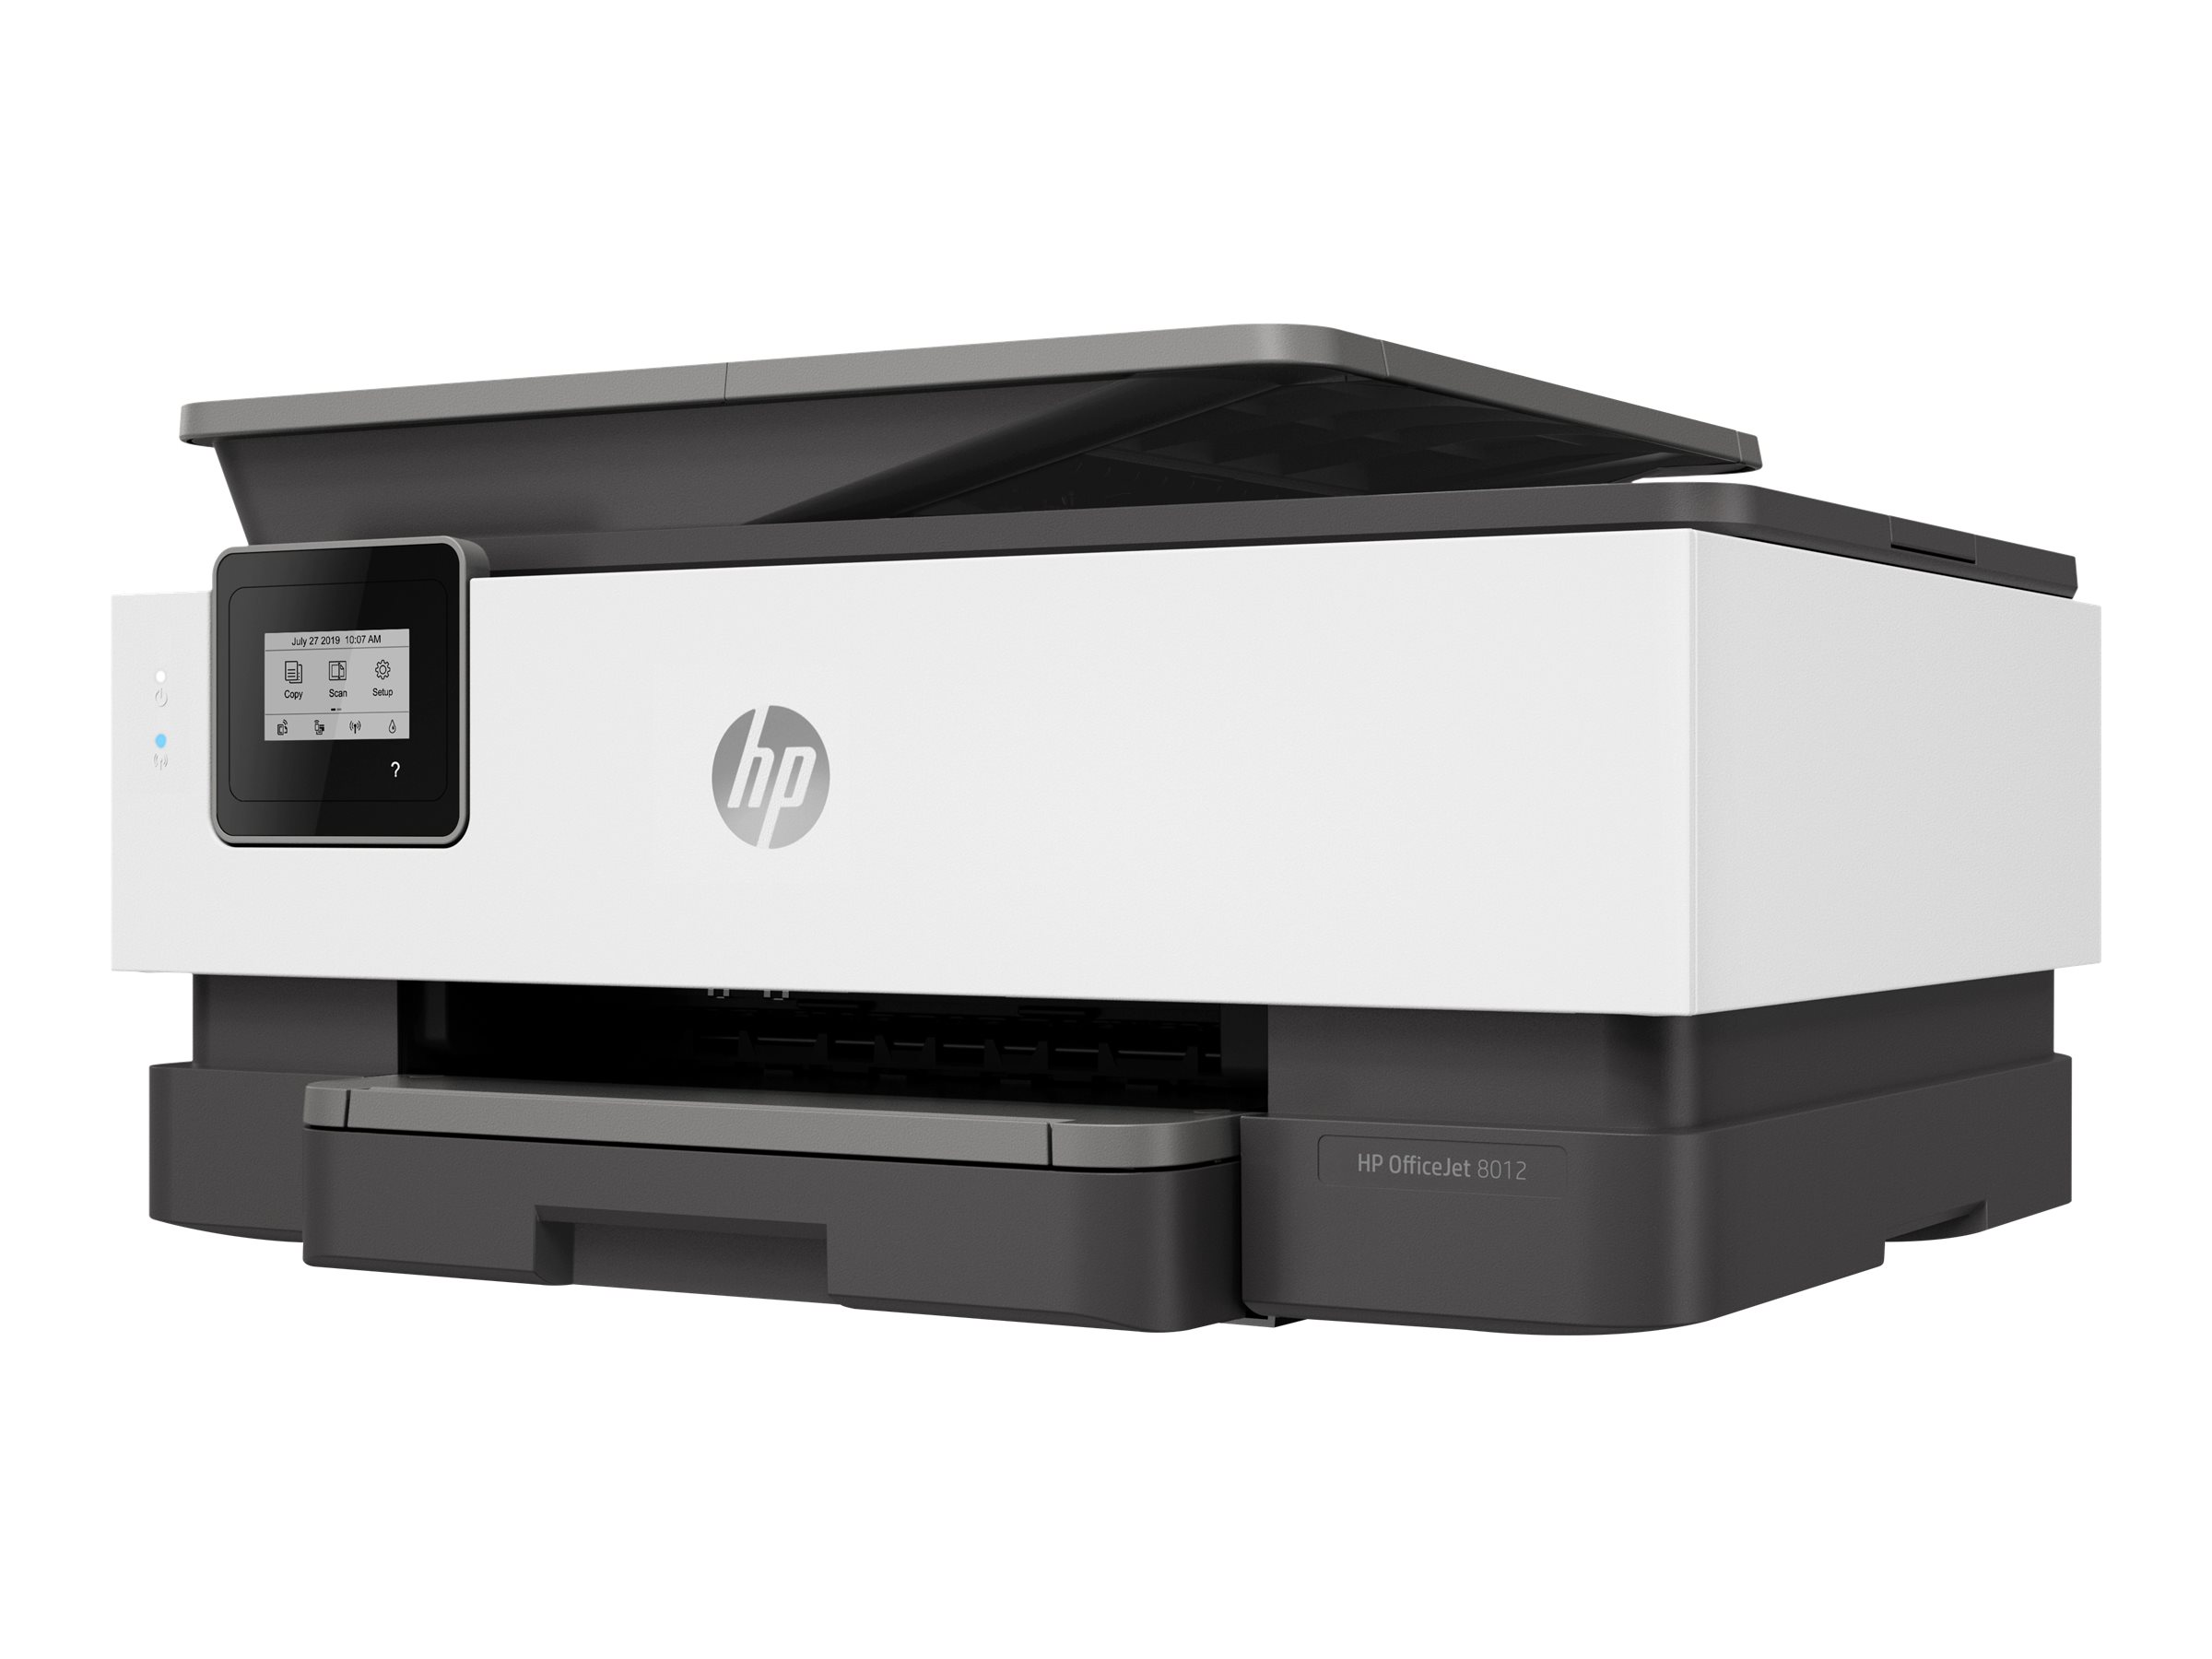 HP Officejet 8012 All-in-One - imprimante multifonctions jet d'encre couleur A4 - Wifi, USB - recto-verso